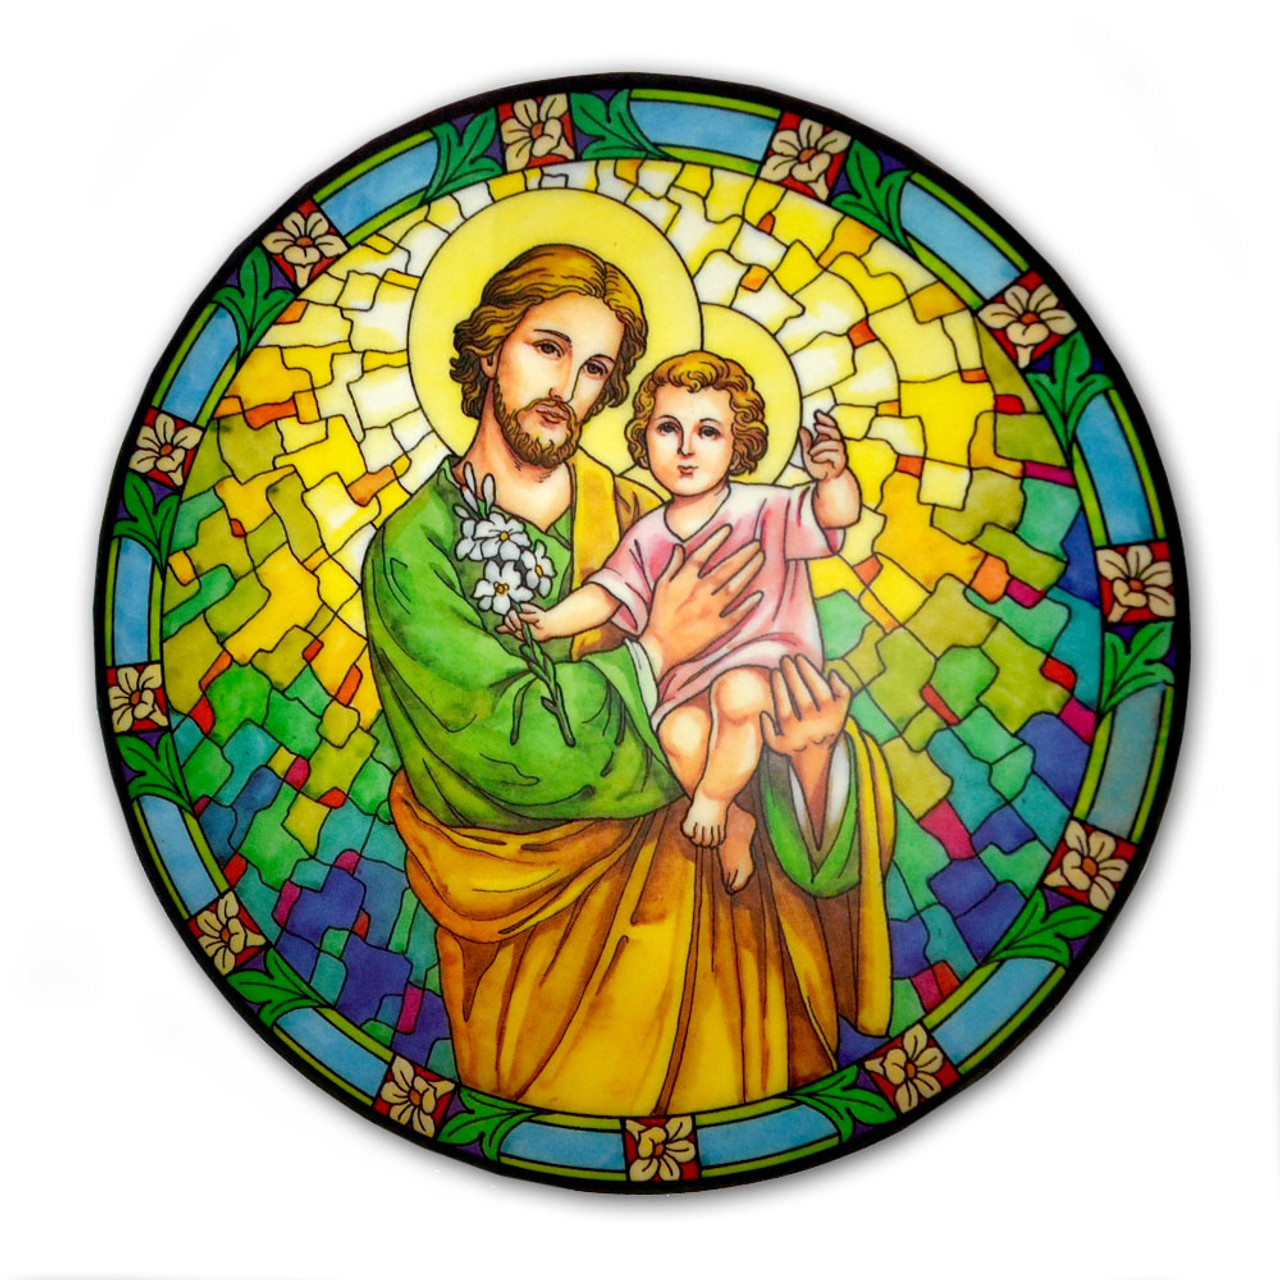 Saint Joseph Window Sticker Suncatcher for Glass